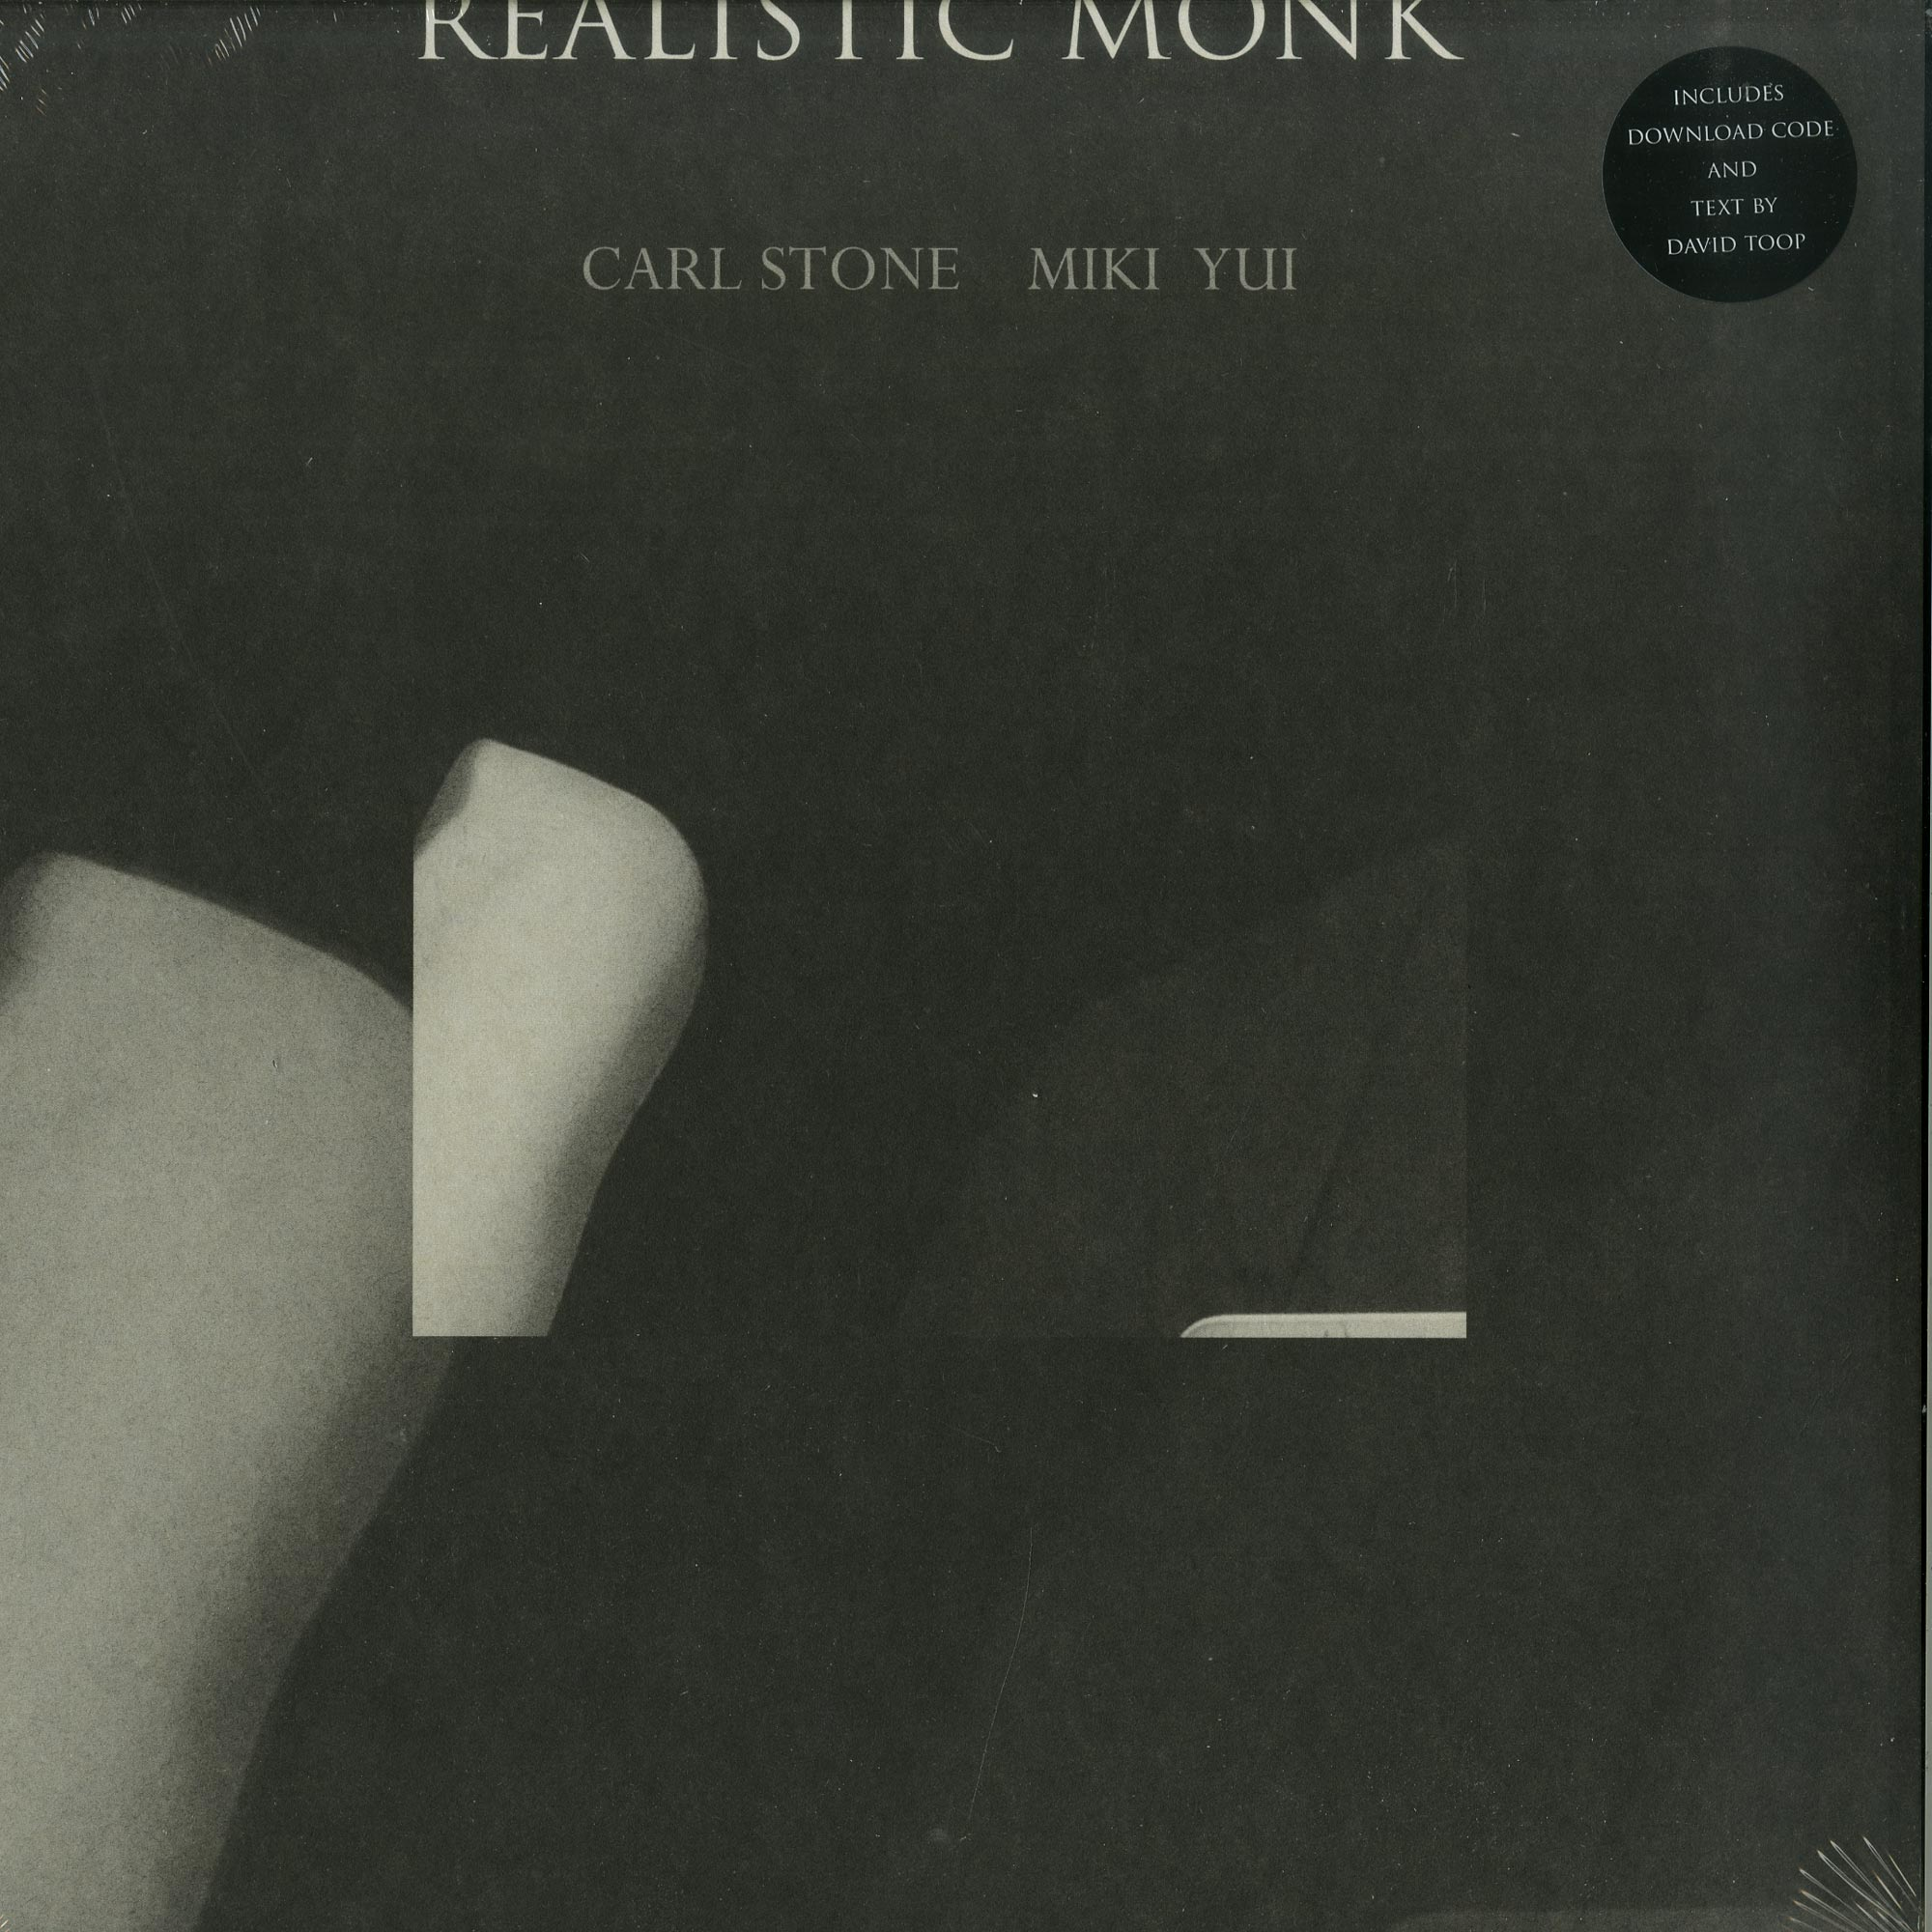 Realistic Monk  - REALM